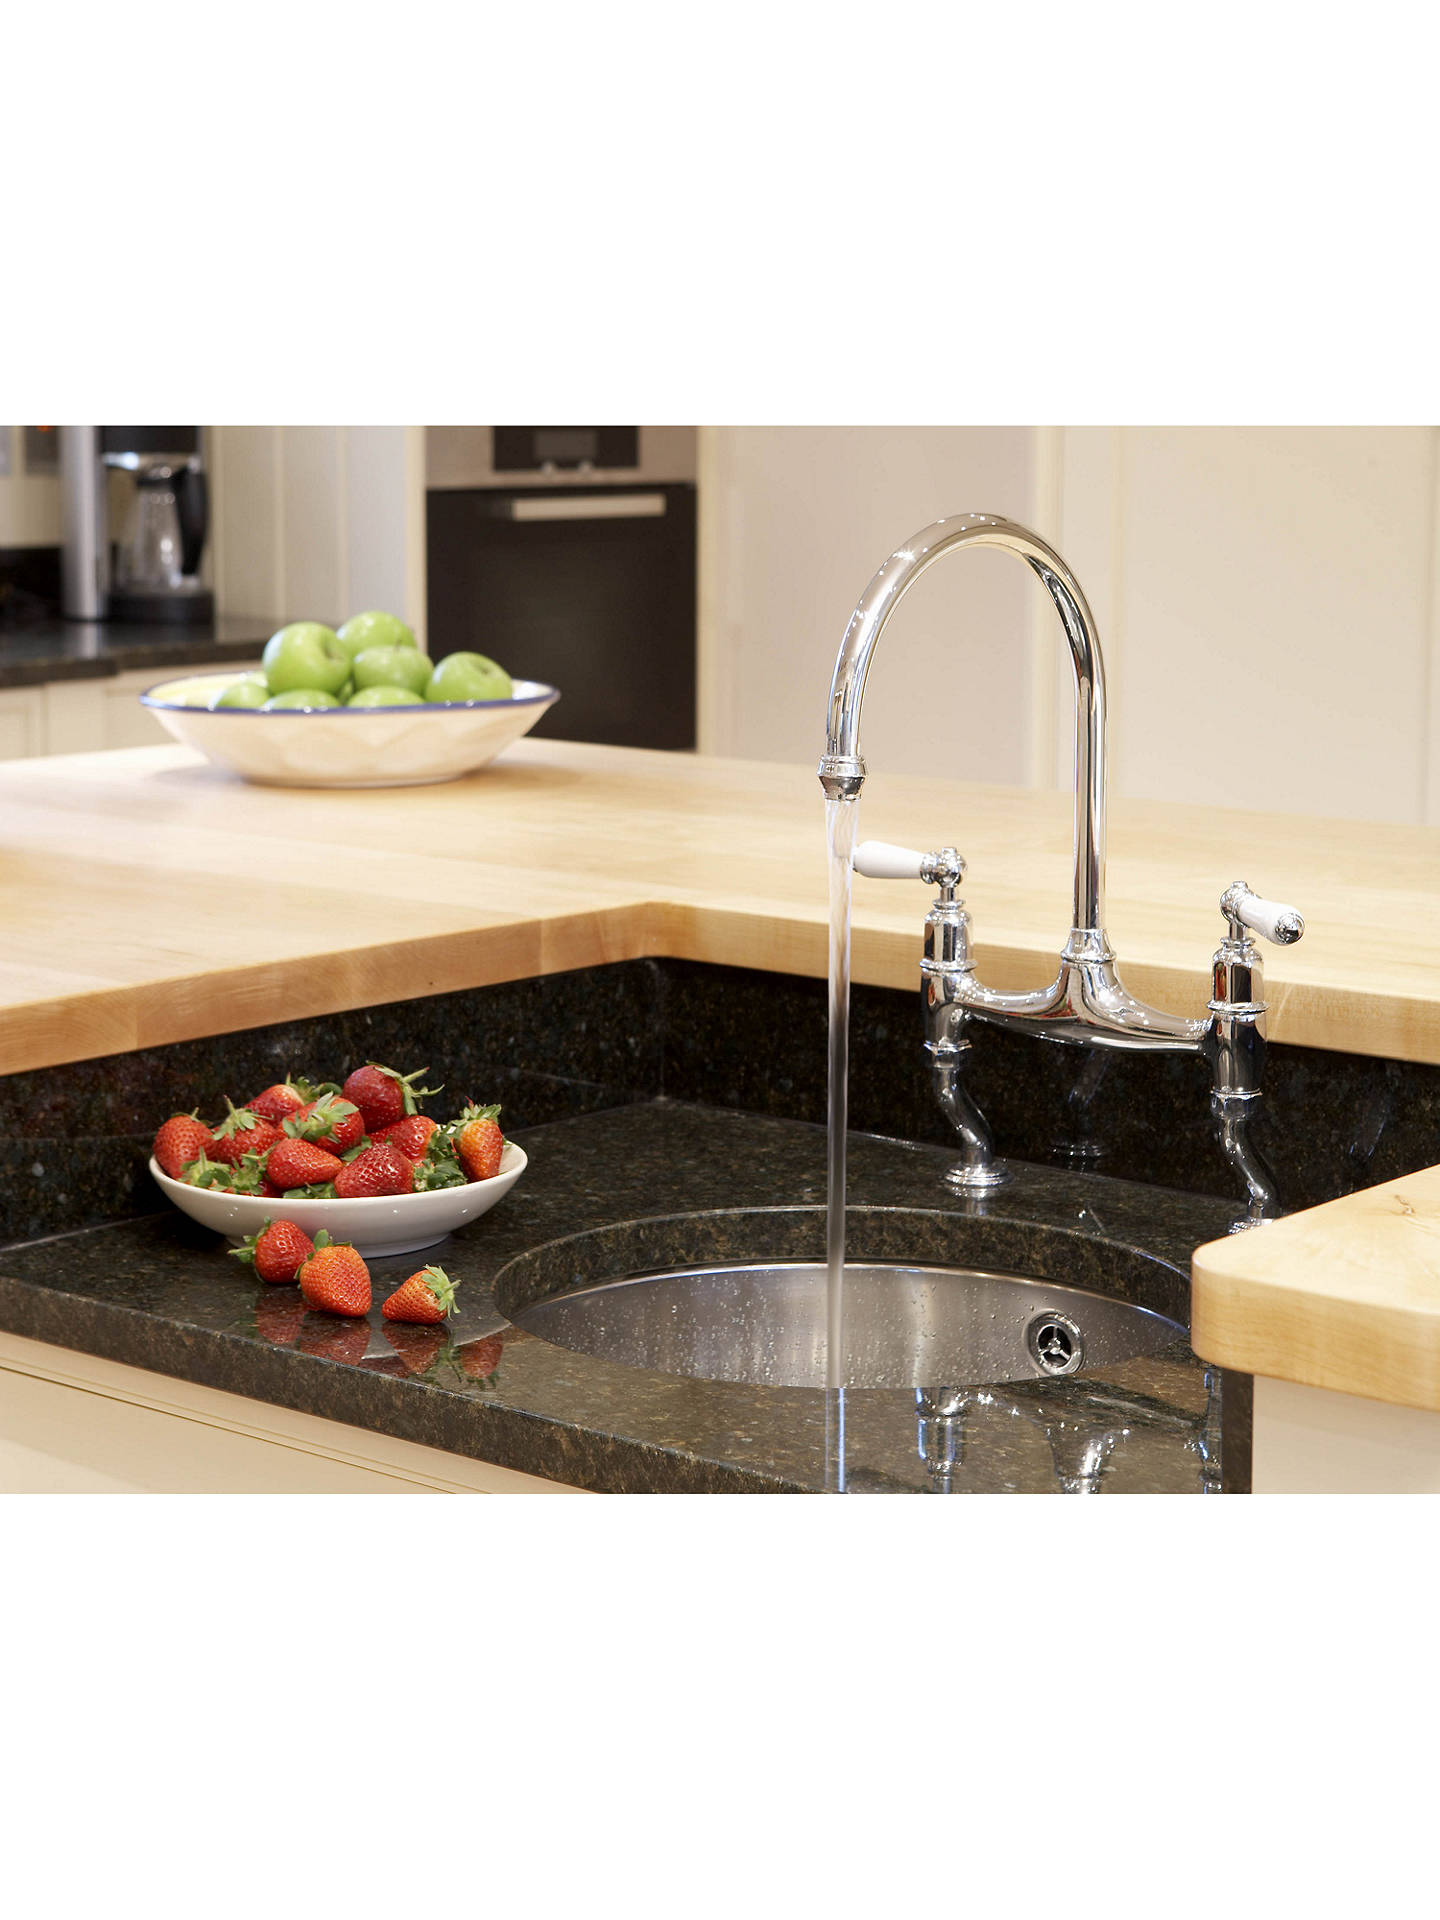 Buy Perrin & Rowe Phoenician 4460 Monobloc 2 Lever Mixer Kitchen Tap, Chrome Online at johnlewis.com